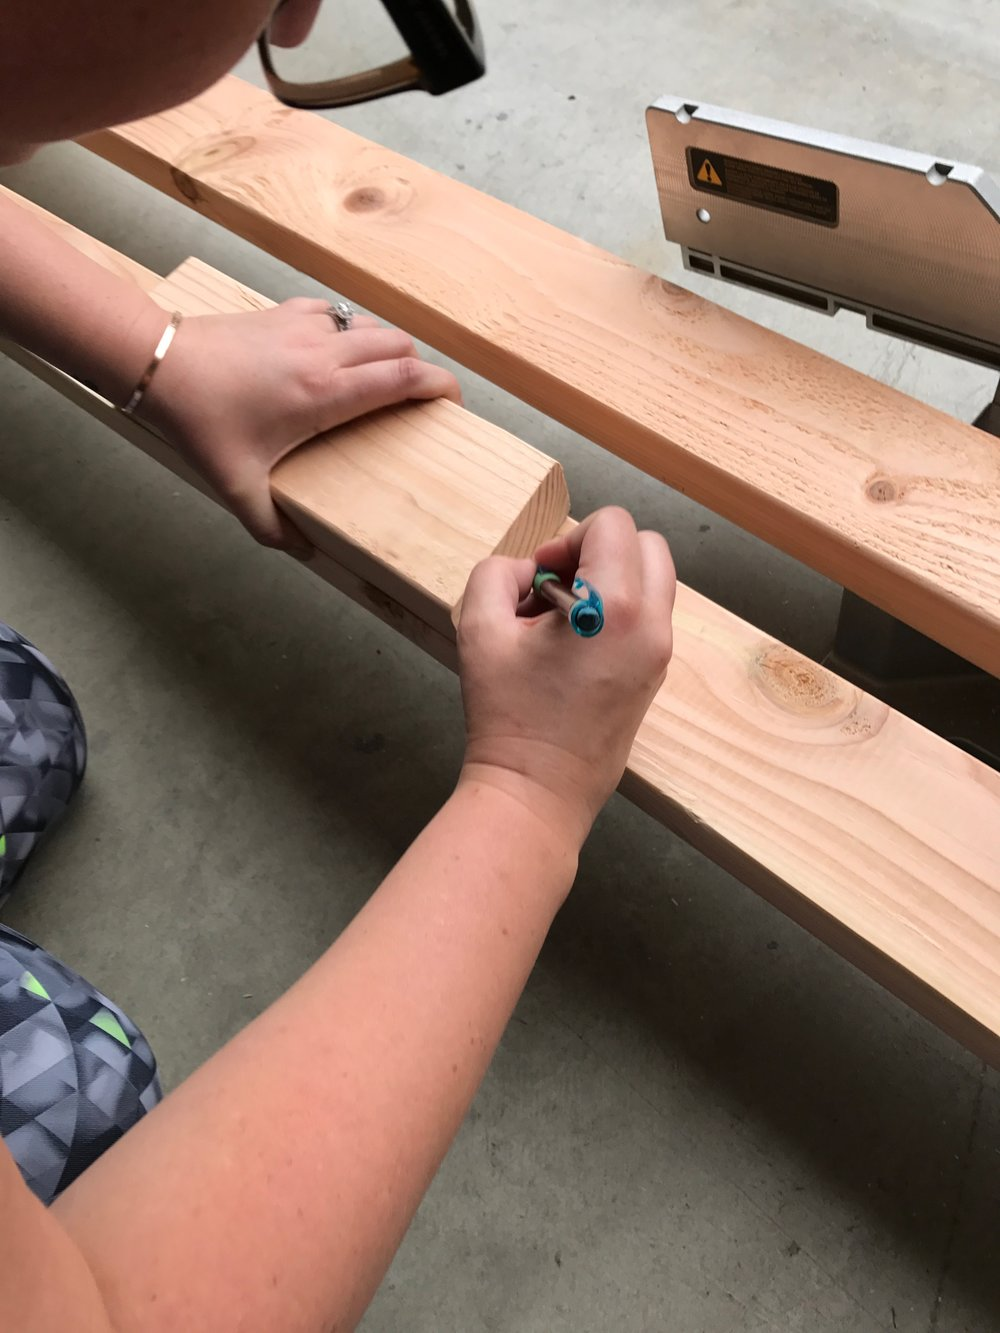 - We then cut a scrap piece at an angle to ensure that the rungs would be level with the floor once it was completed. I made a line at each of the measurements we marked earlier using our scrap piece as a guide. We did this so we knew where the rungs needed to be lined up. I did this on both 7ft pieces.